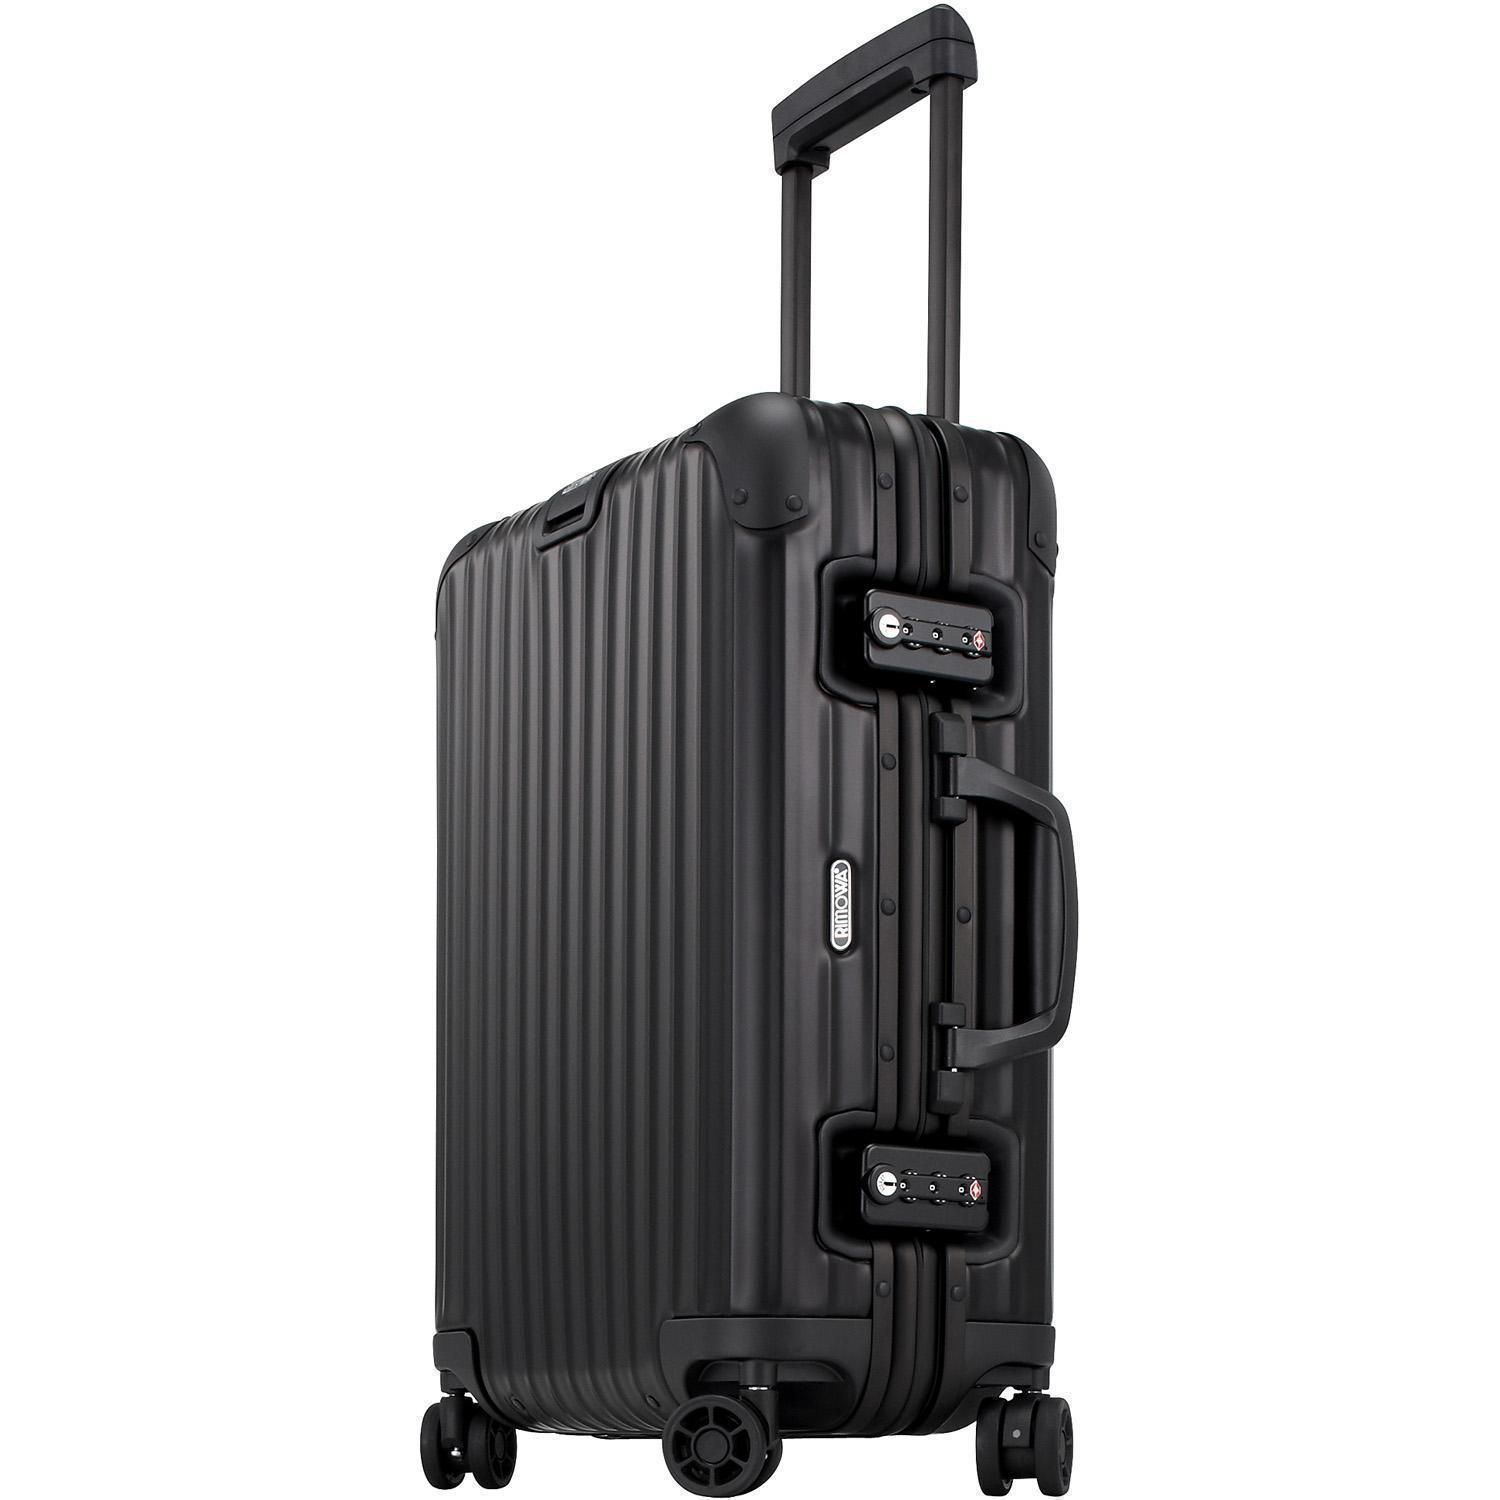 rimowa topas stealth multiwheel cabin iata trolley 52 kaufen bei markenkoffer. Black Bedroom Furniture Sets. Home Design Ideas